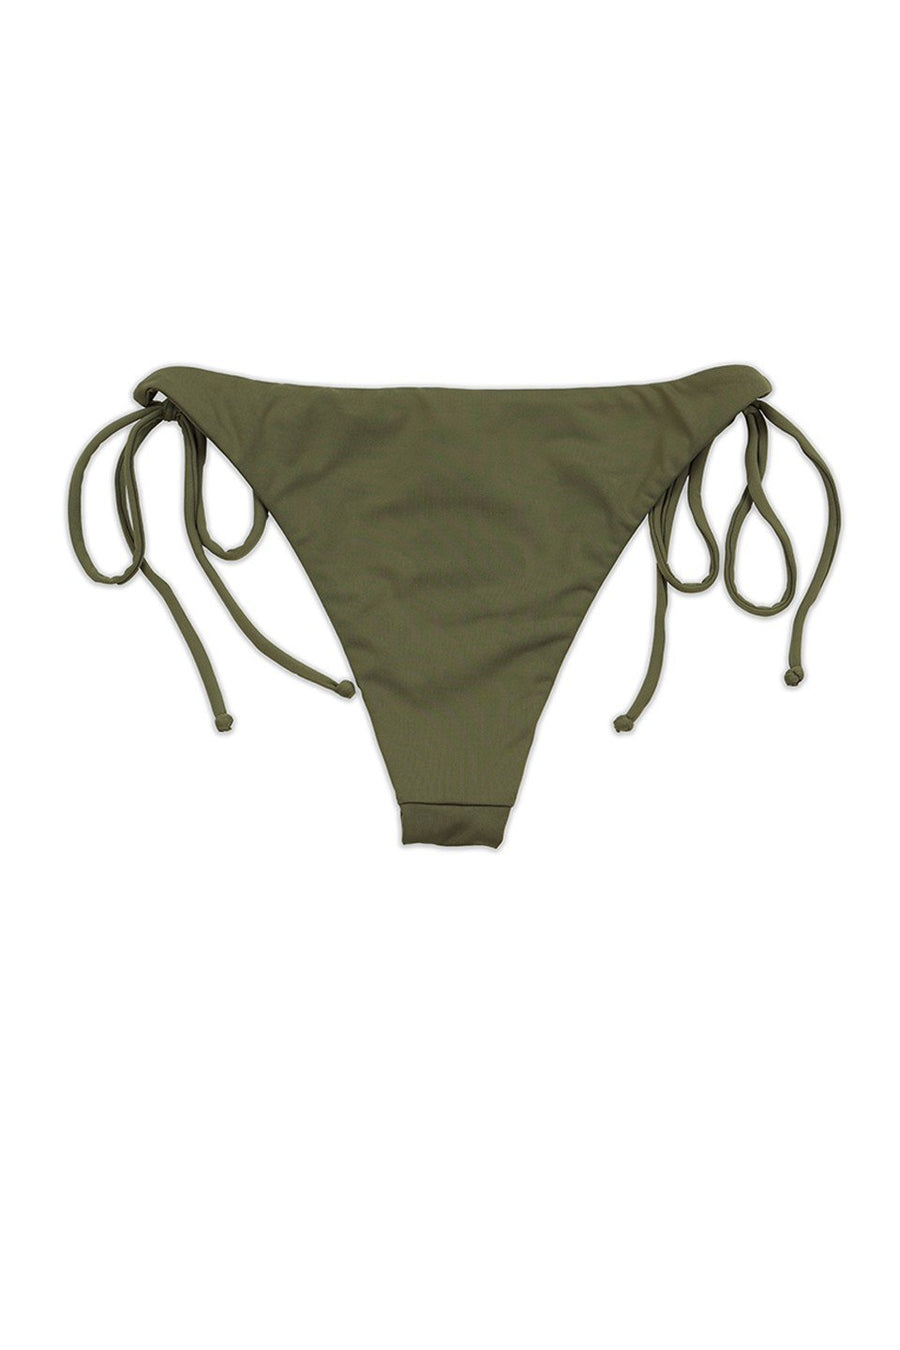 Taupe Seamless Tie Side Cheeky Bikini Bottom Front - Dippin' Daisy's Swimwear